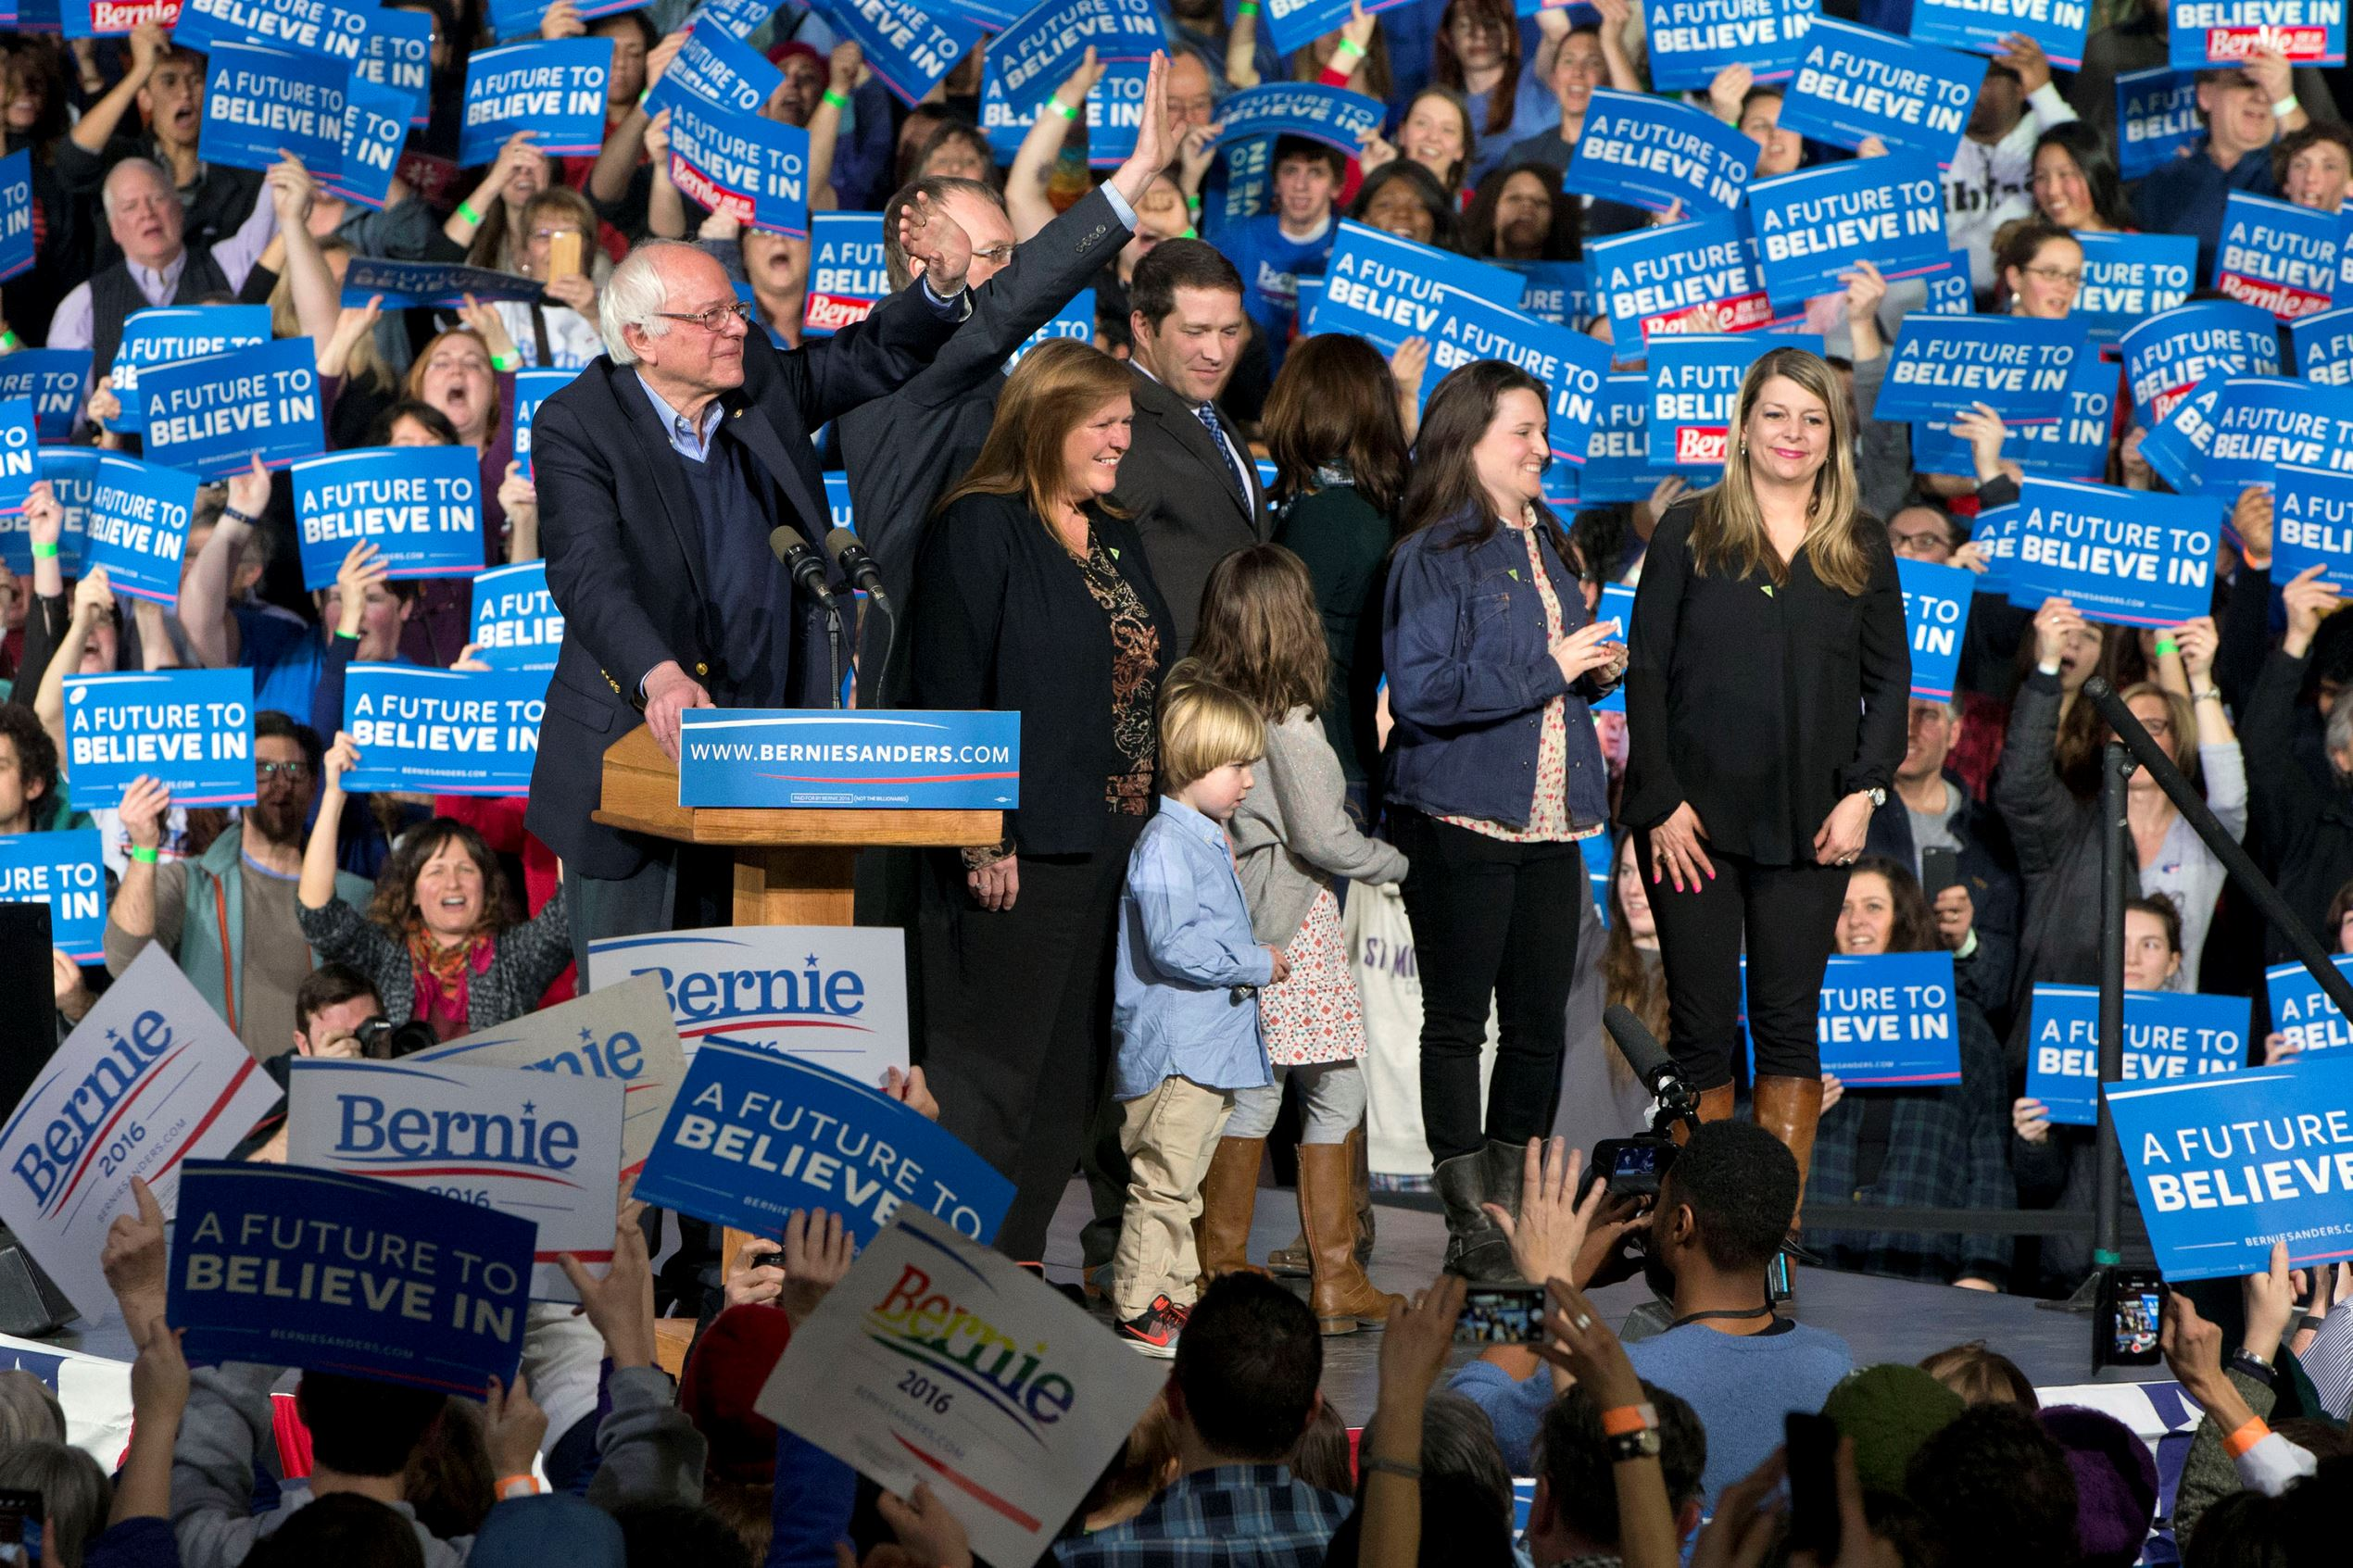 Democratic presidential candidate Sen. Bernie Sanders, I-Vt., waves next to his son Levi Sanders, his wife Jane Sanders, and members of their family during a primary night rally in Essex Junction, Vt., Tuesday, March 1, 2016, on Super Tuesday.